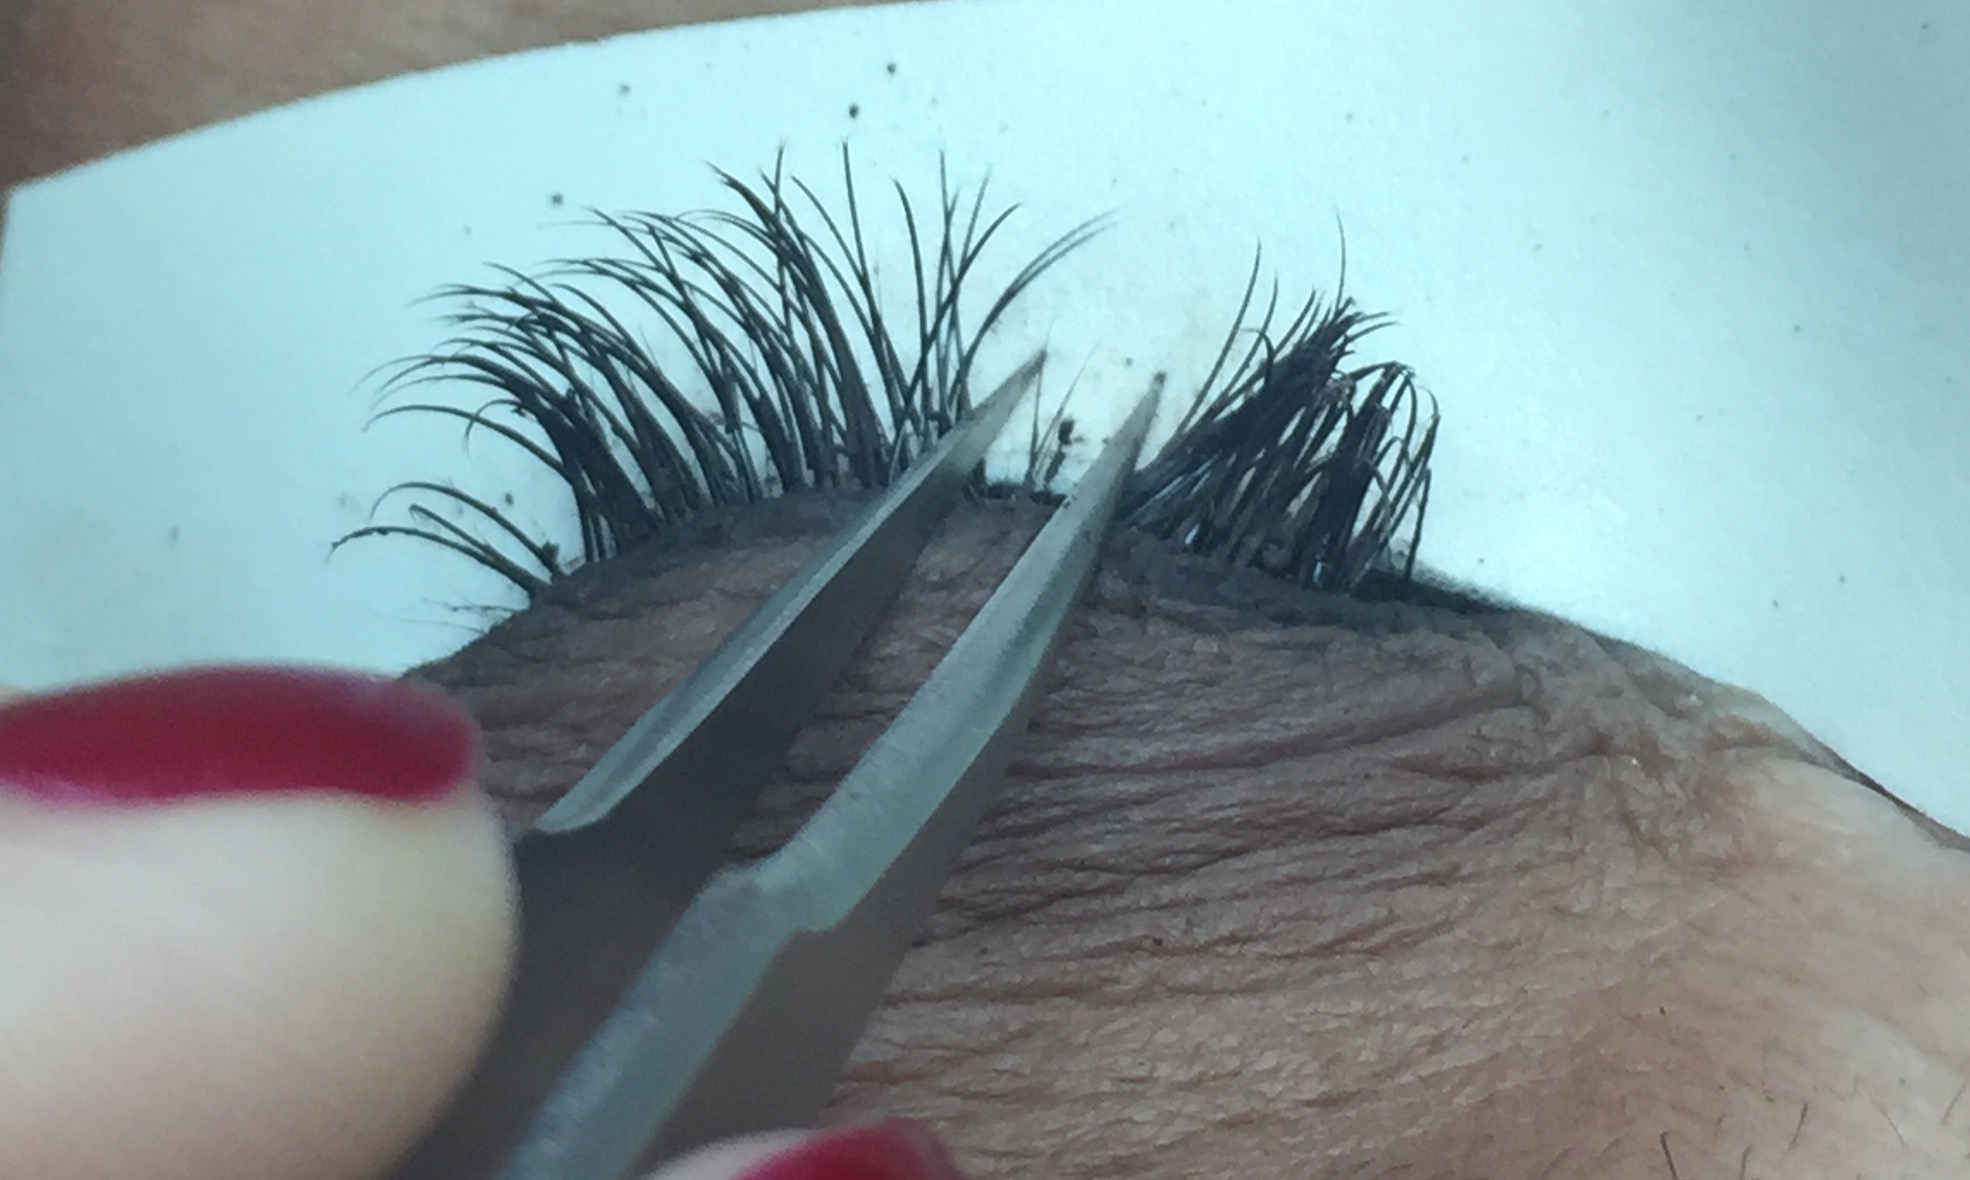 You can see residual eyeliner and eye shadow fall out on these lashes. These are NOT clean lashes. This is what we aim to remove in the cleaning process.